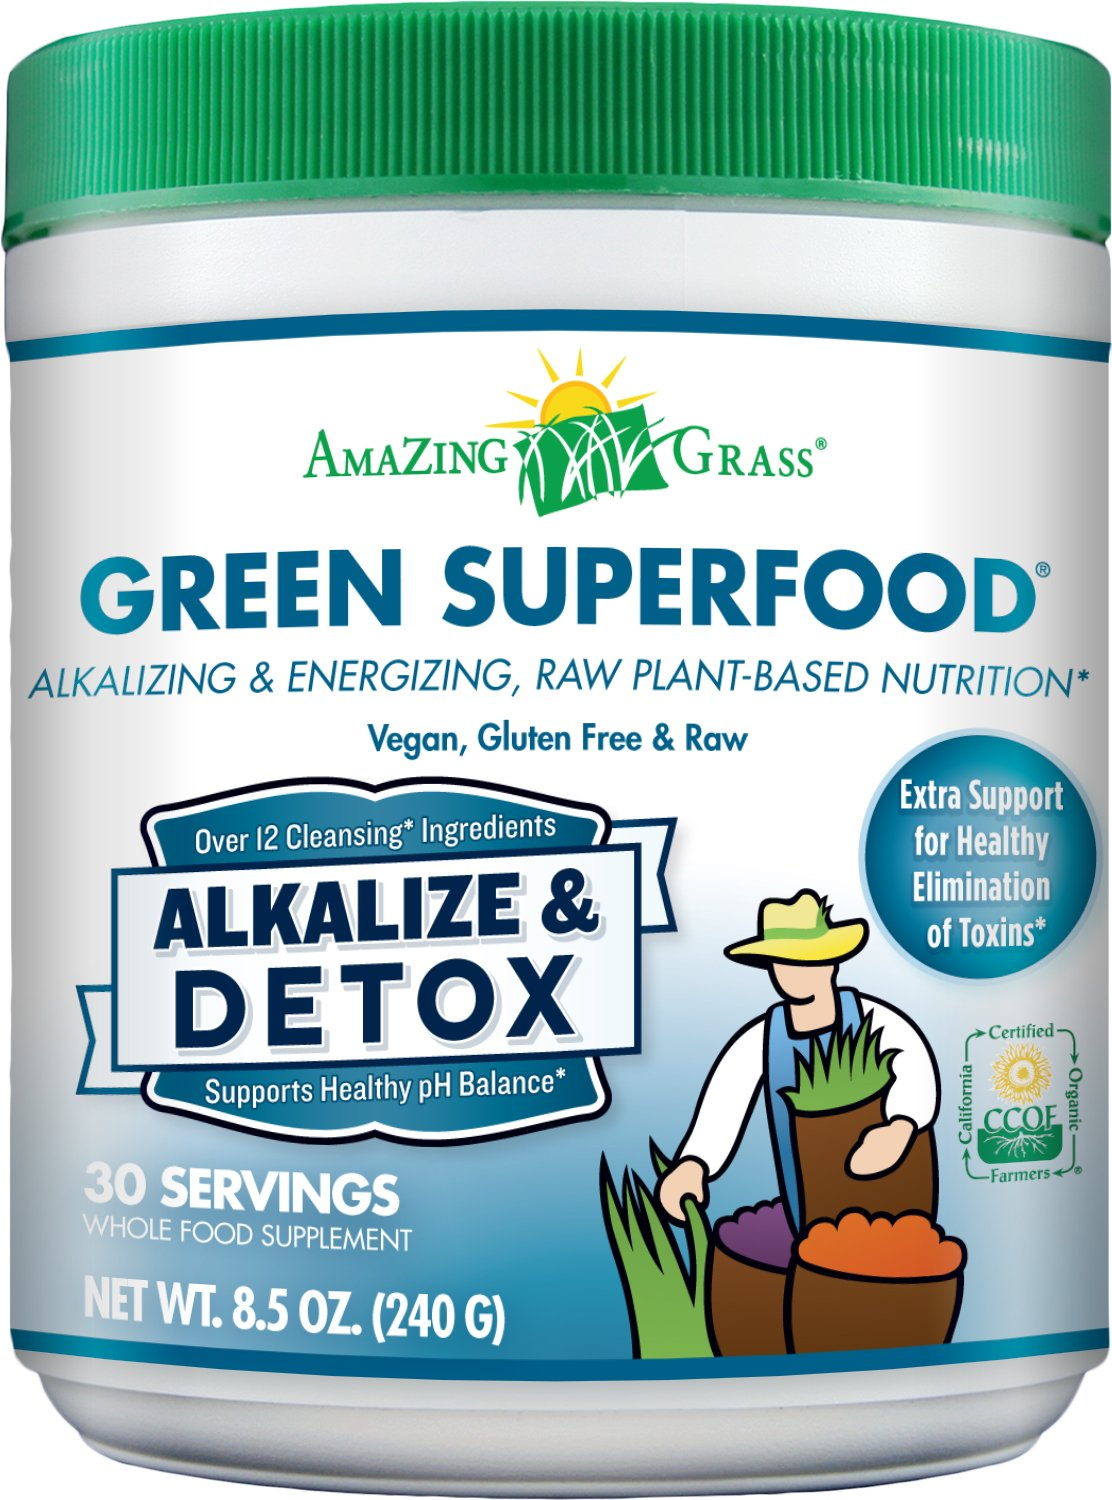 Best Green Superfood Powder 2020.Top 20 Best Liver Cleanse Detox Supplements 2019 2020 On